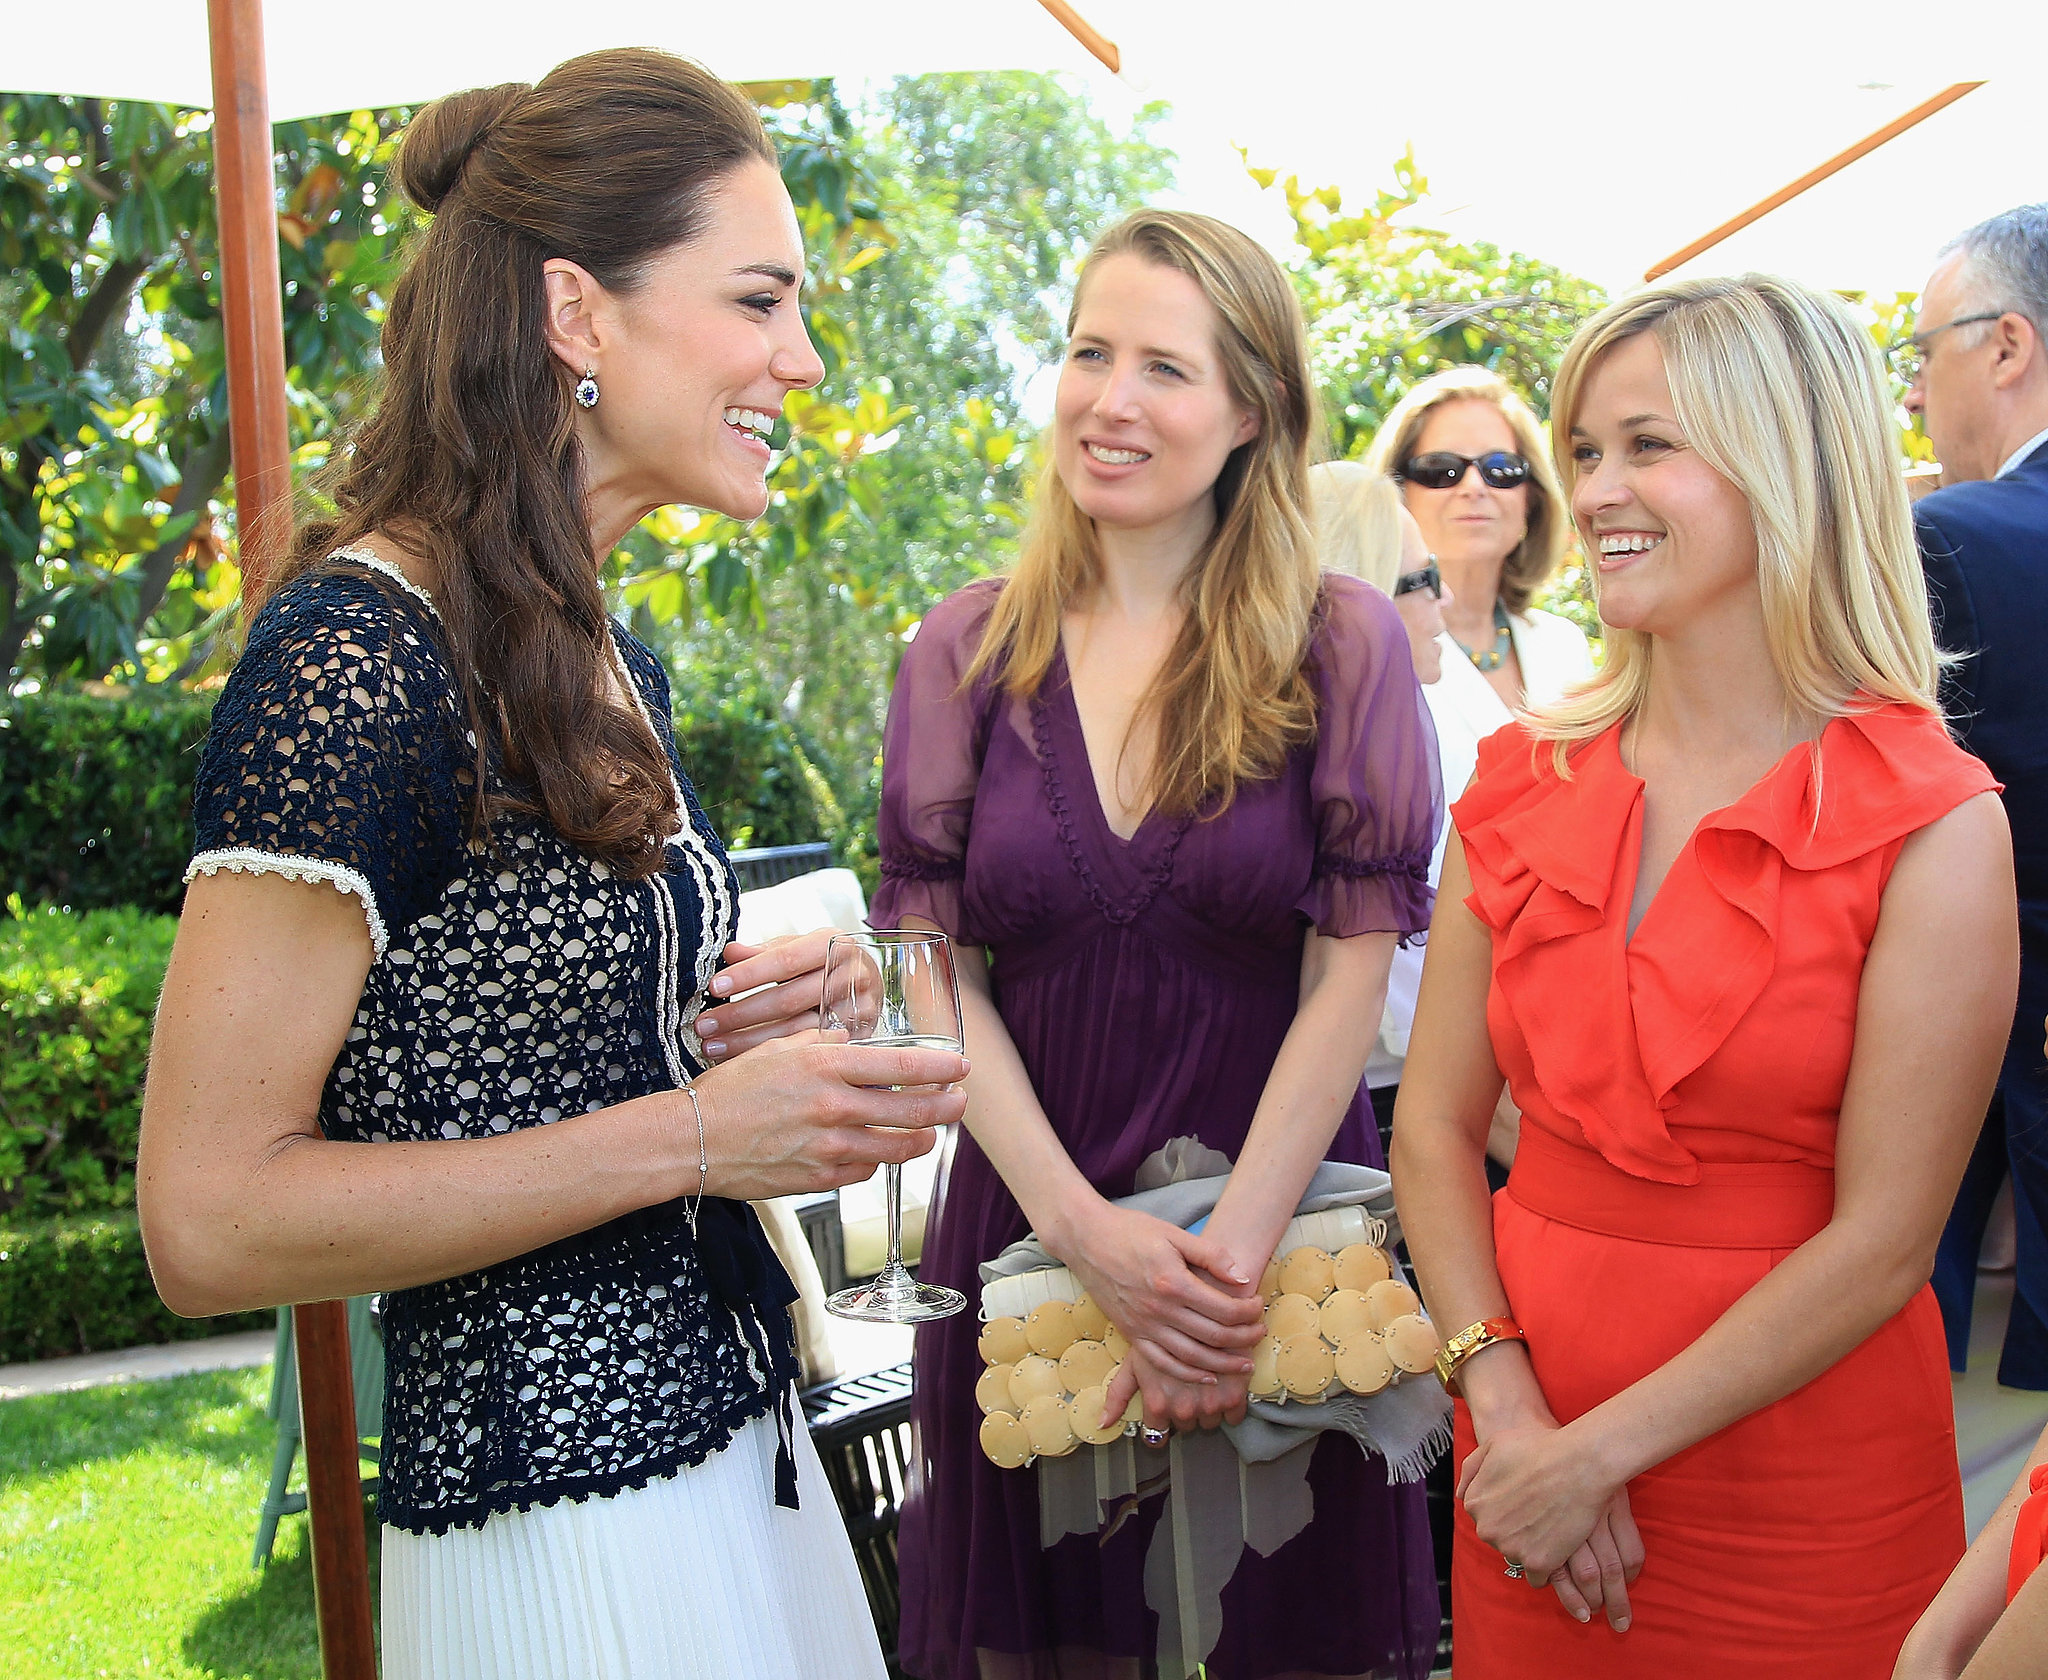 She was honored to meet the Duchess of Cambridge in July 2011.